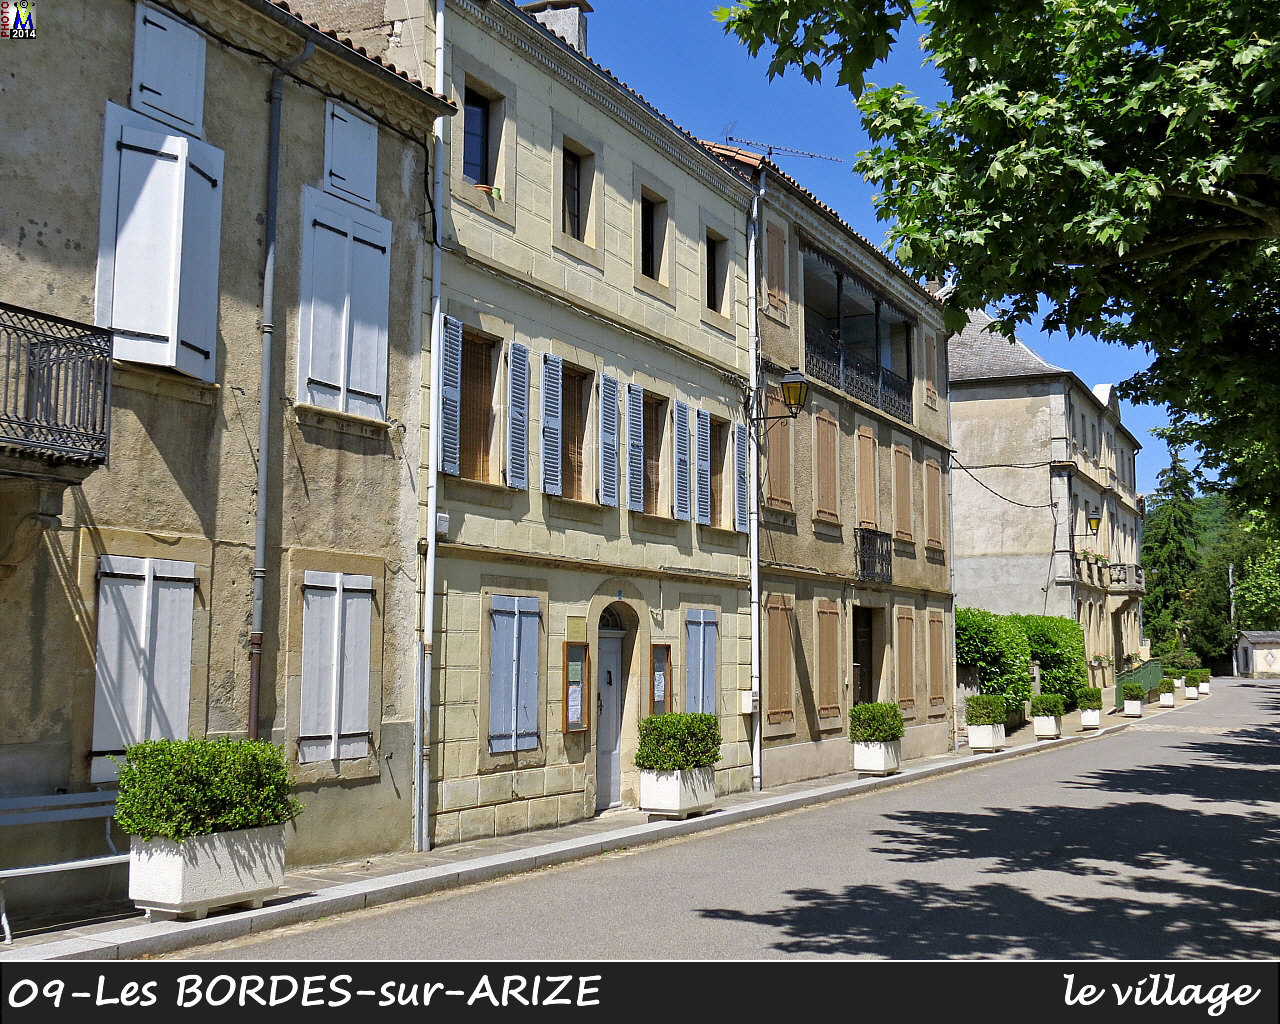 09BORDES-ARIZE_village_132.jpg